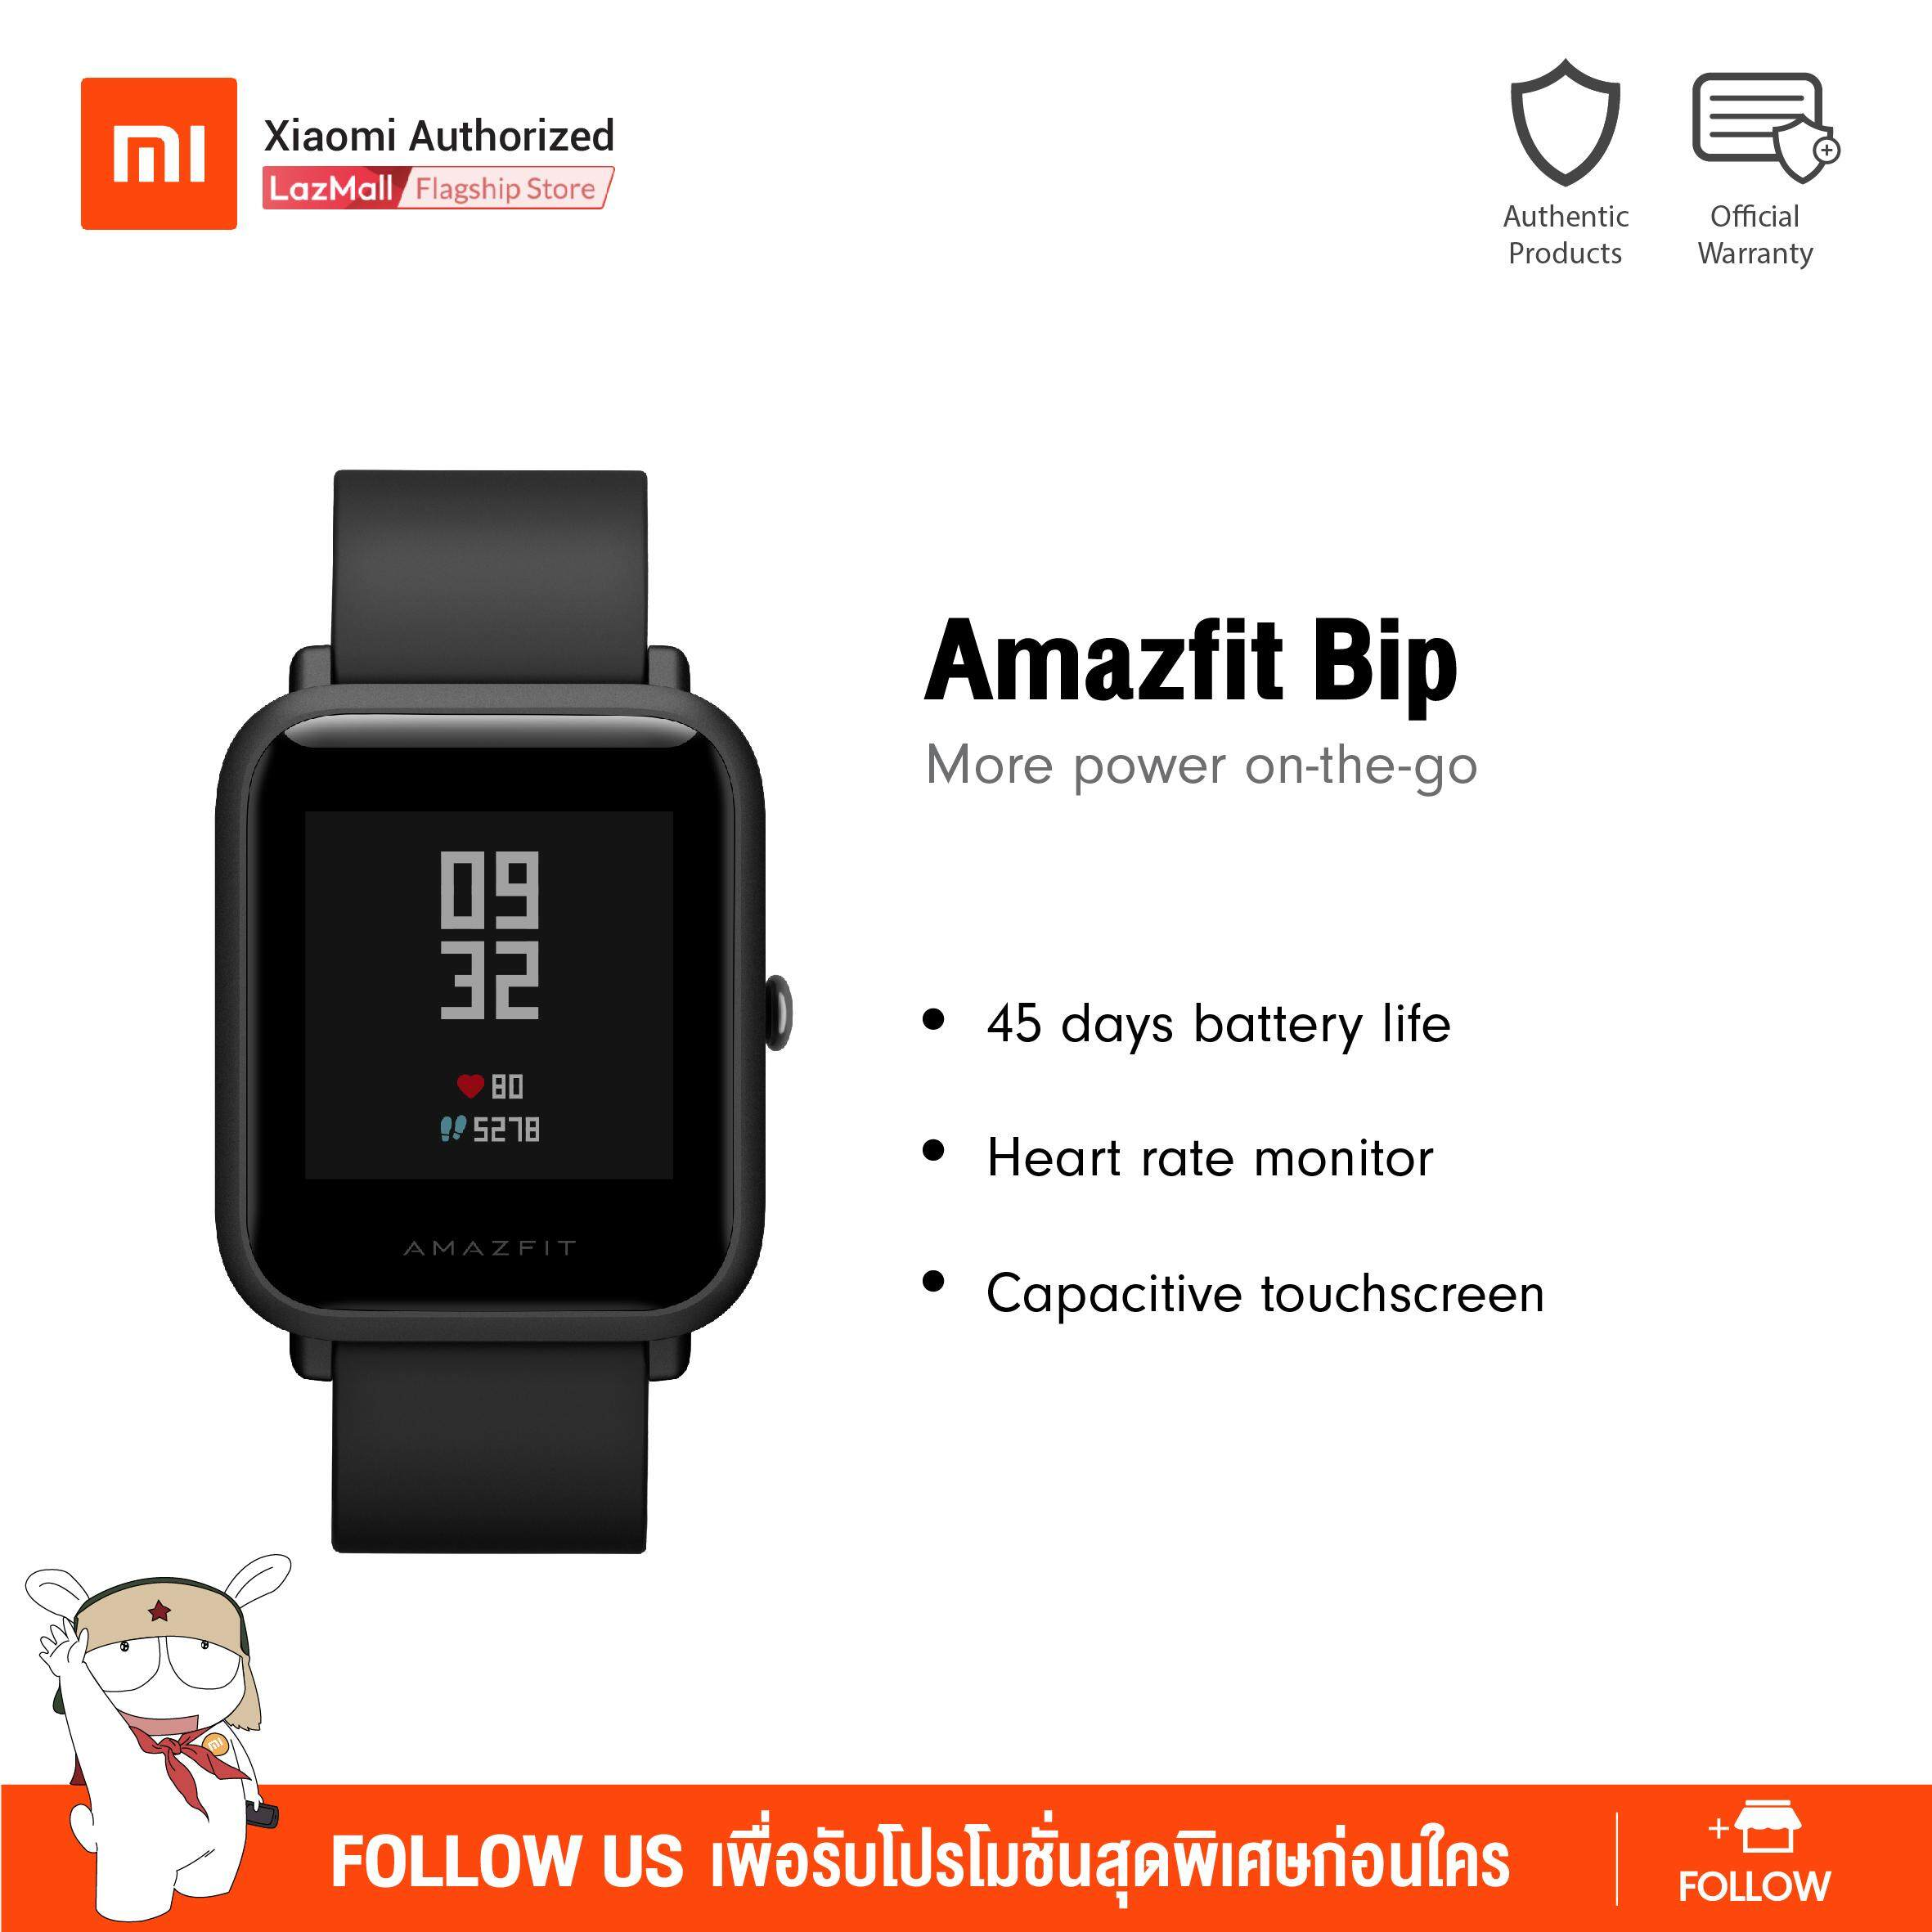 Mi Amazfit Bip By Xiaomi Official Store.